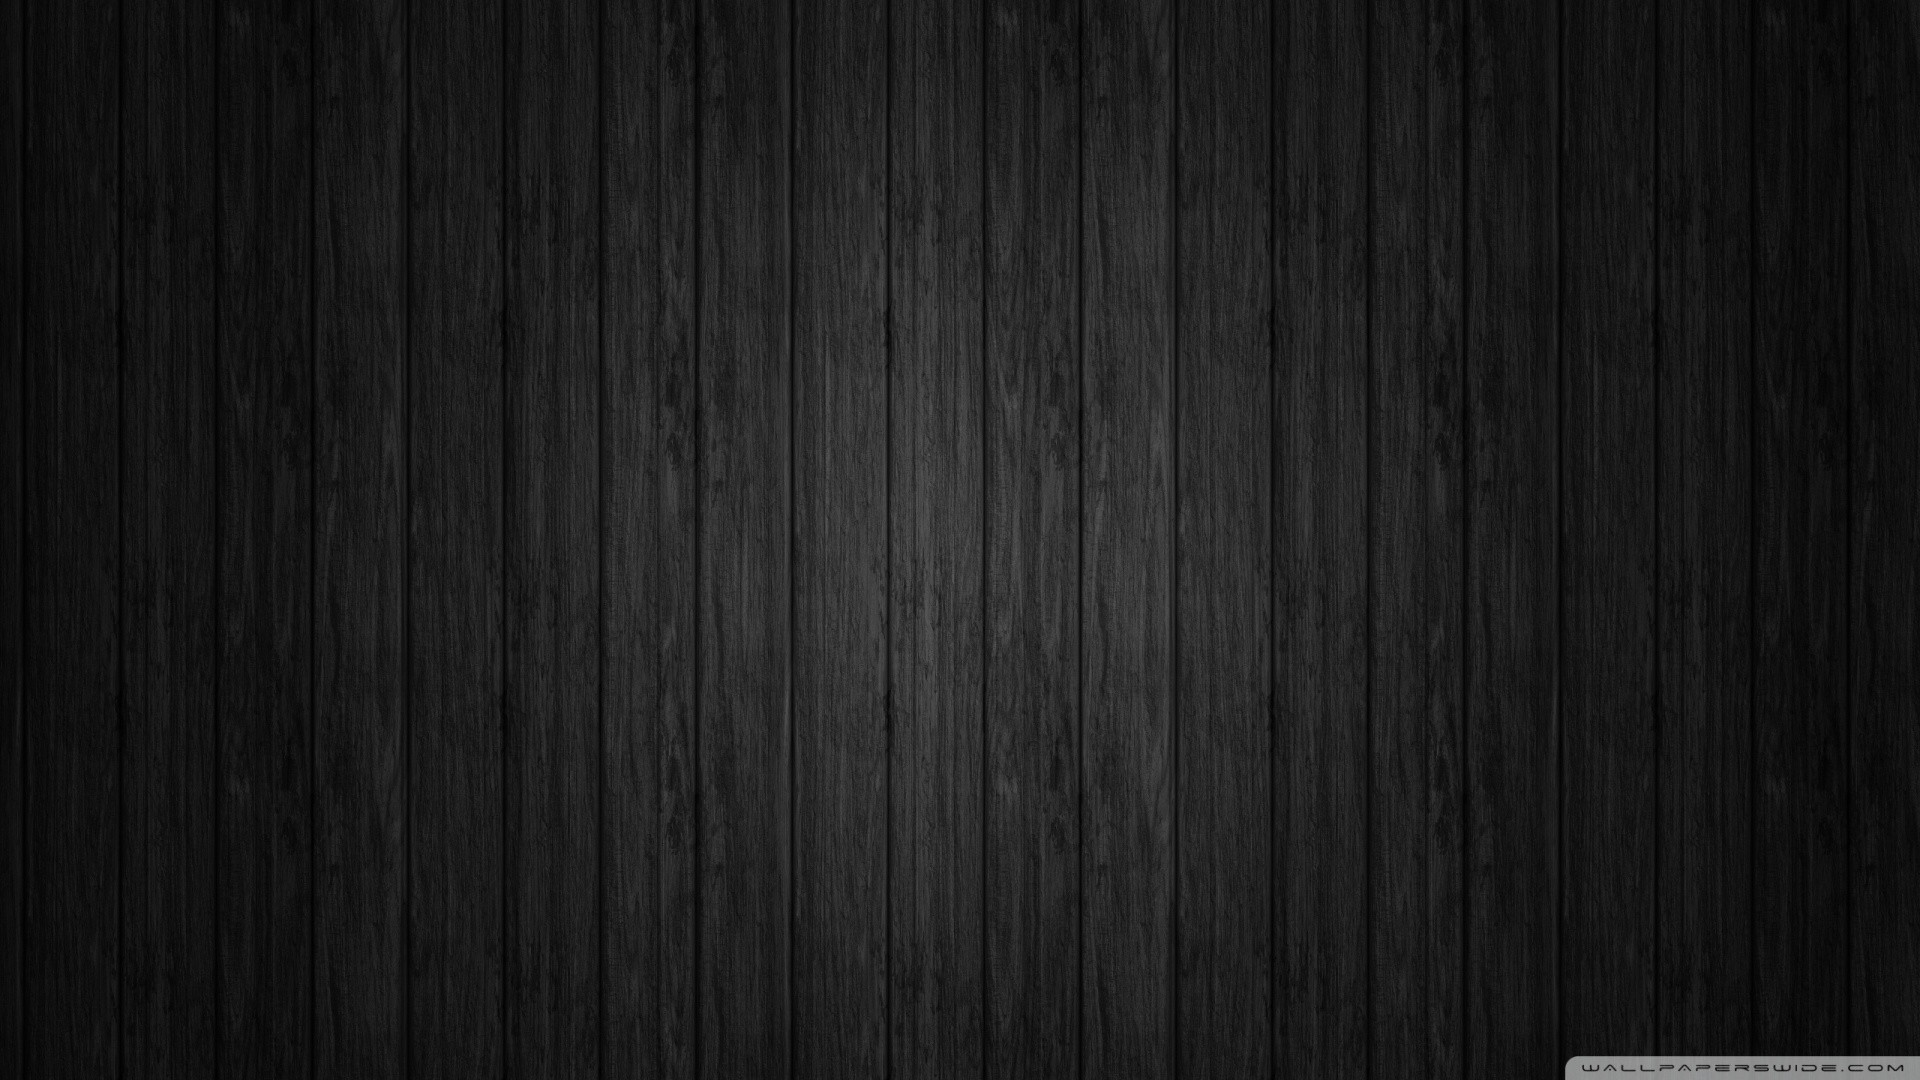 Res: 1920x1080, Nike black wallpaper hd. Loose supply on orders over 50. Purchase samsung  qe55q6f qled hdr 1000 4k extremely hd good television 55 with tvplusfreesat  hd 360 ...